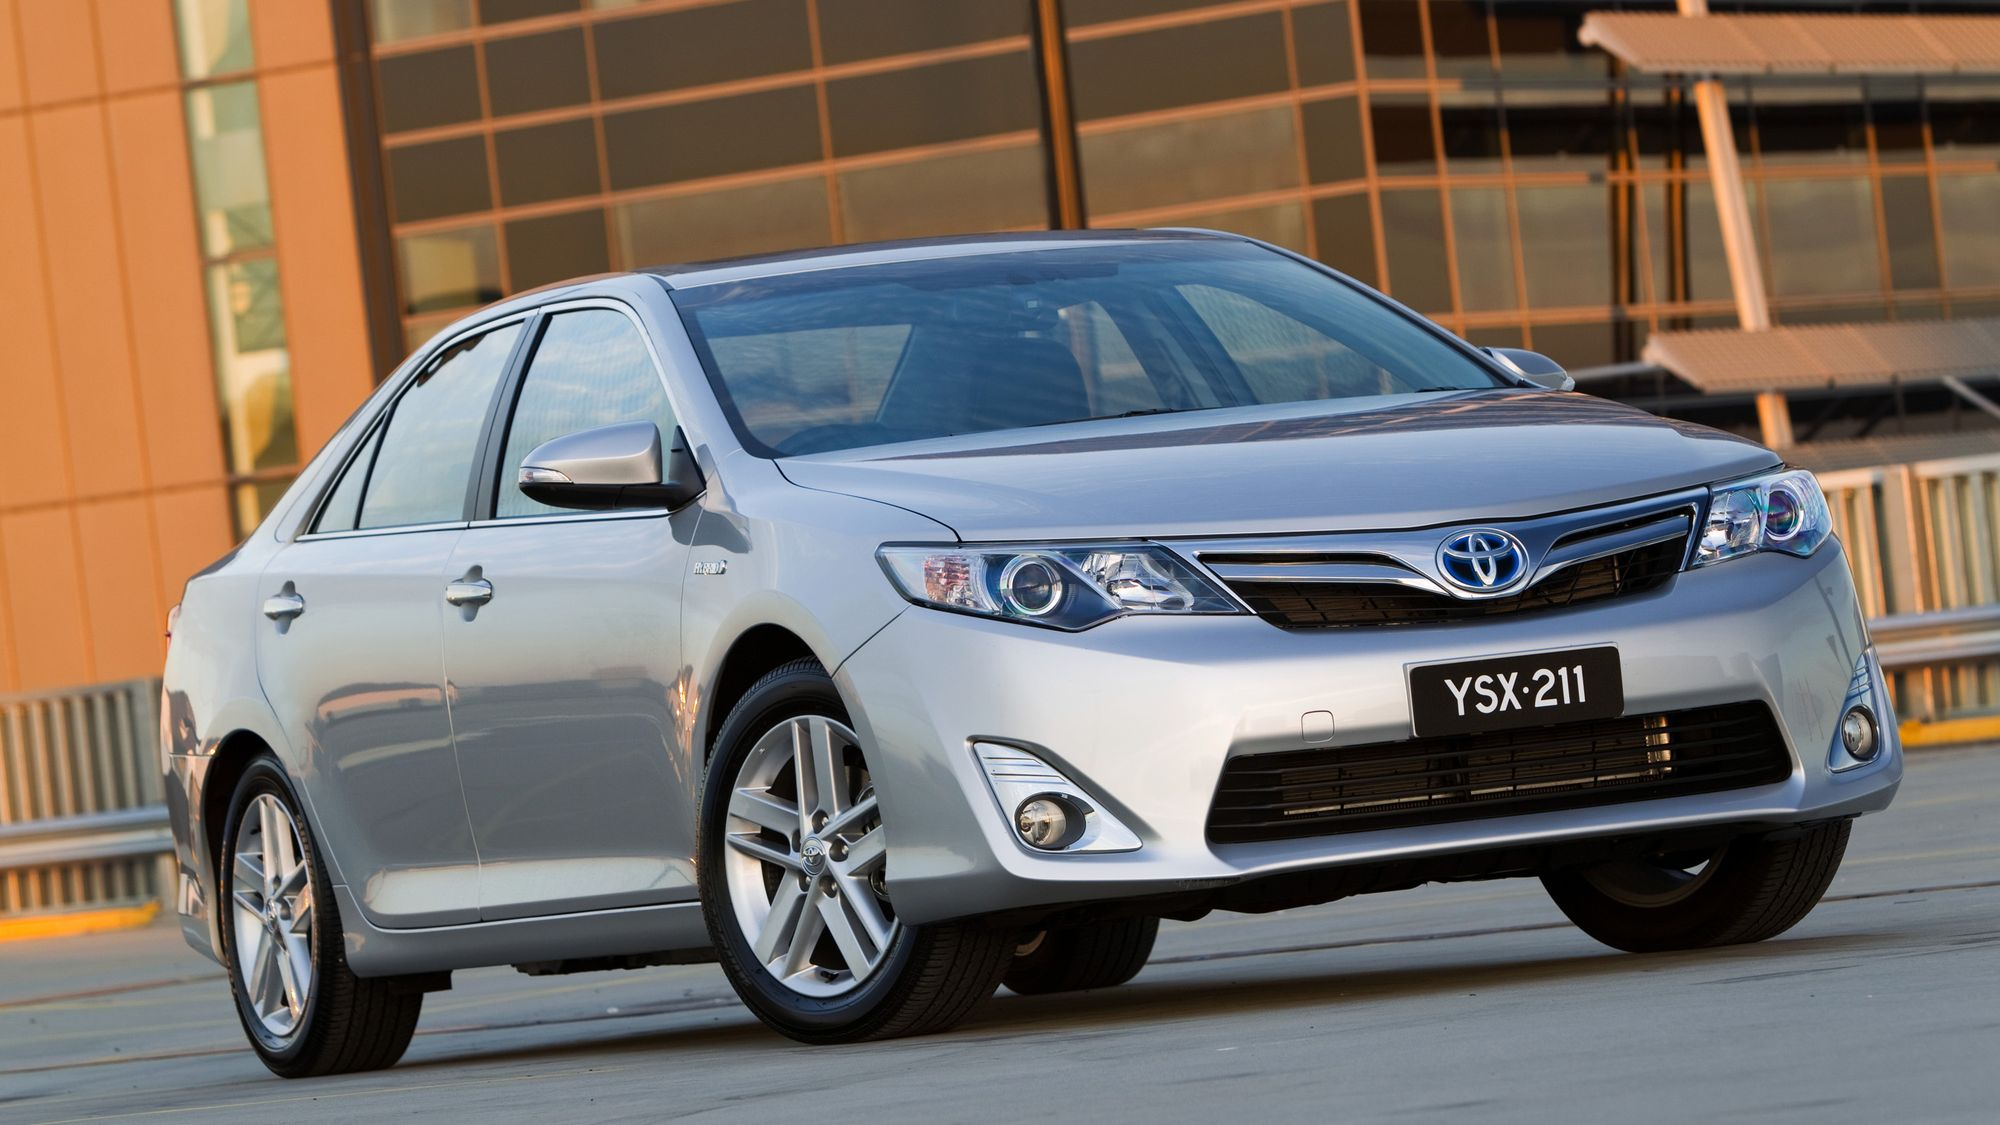 Toyota Camry Used Car Review